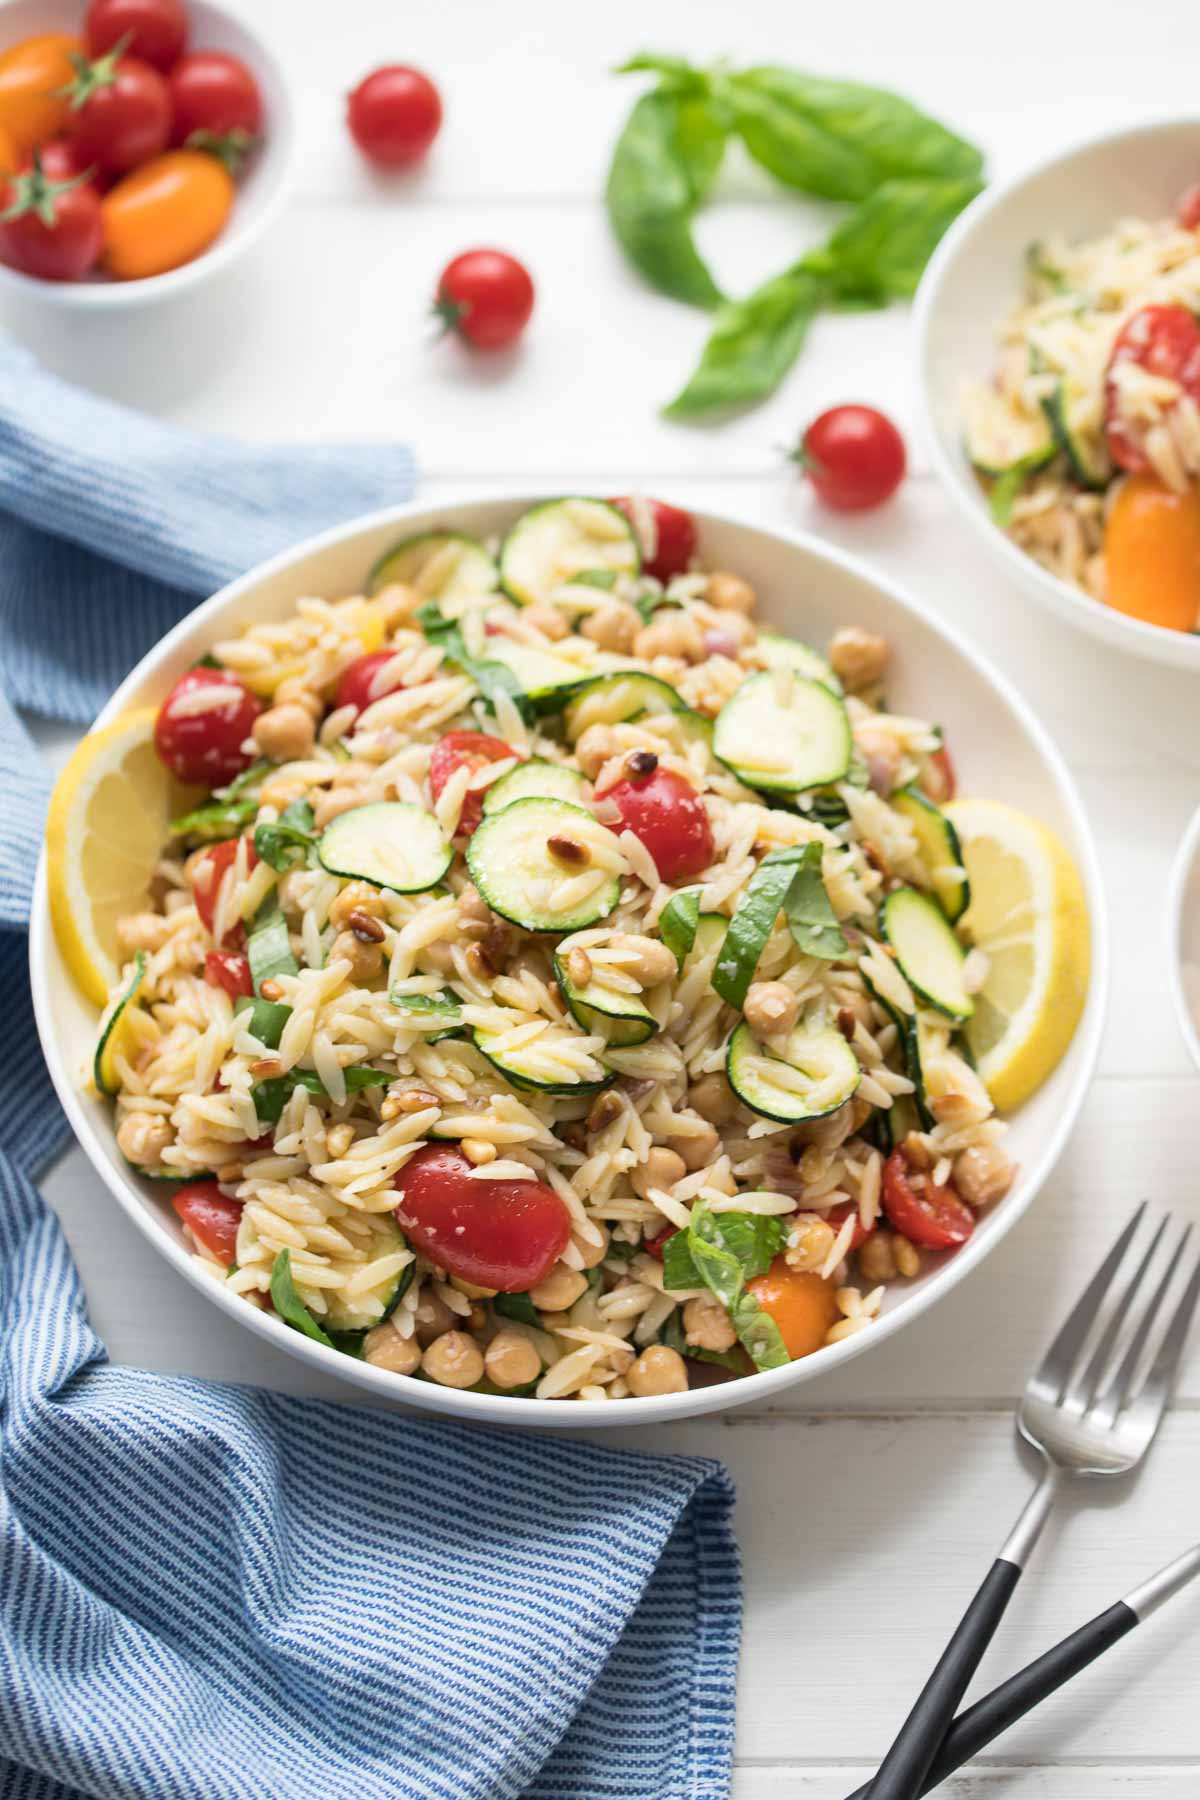 Orzo Salad with Zucchini and Chickpeas